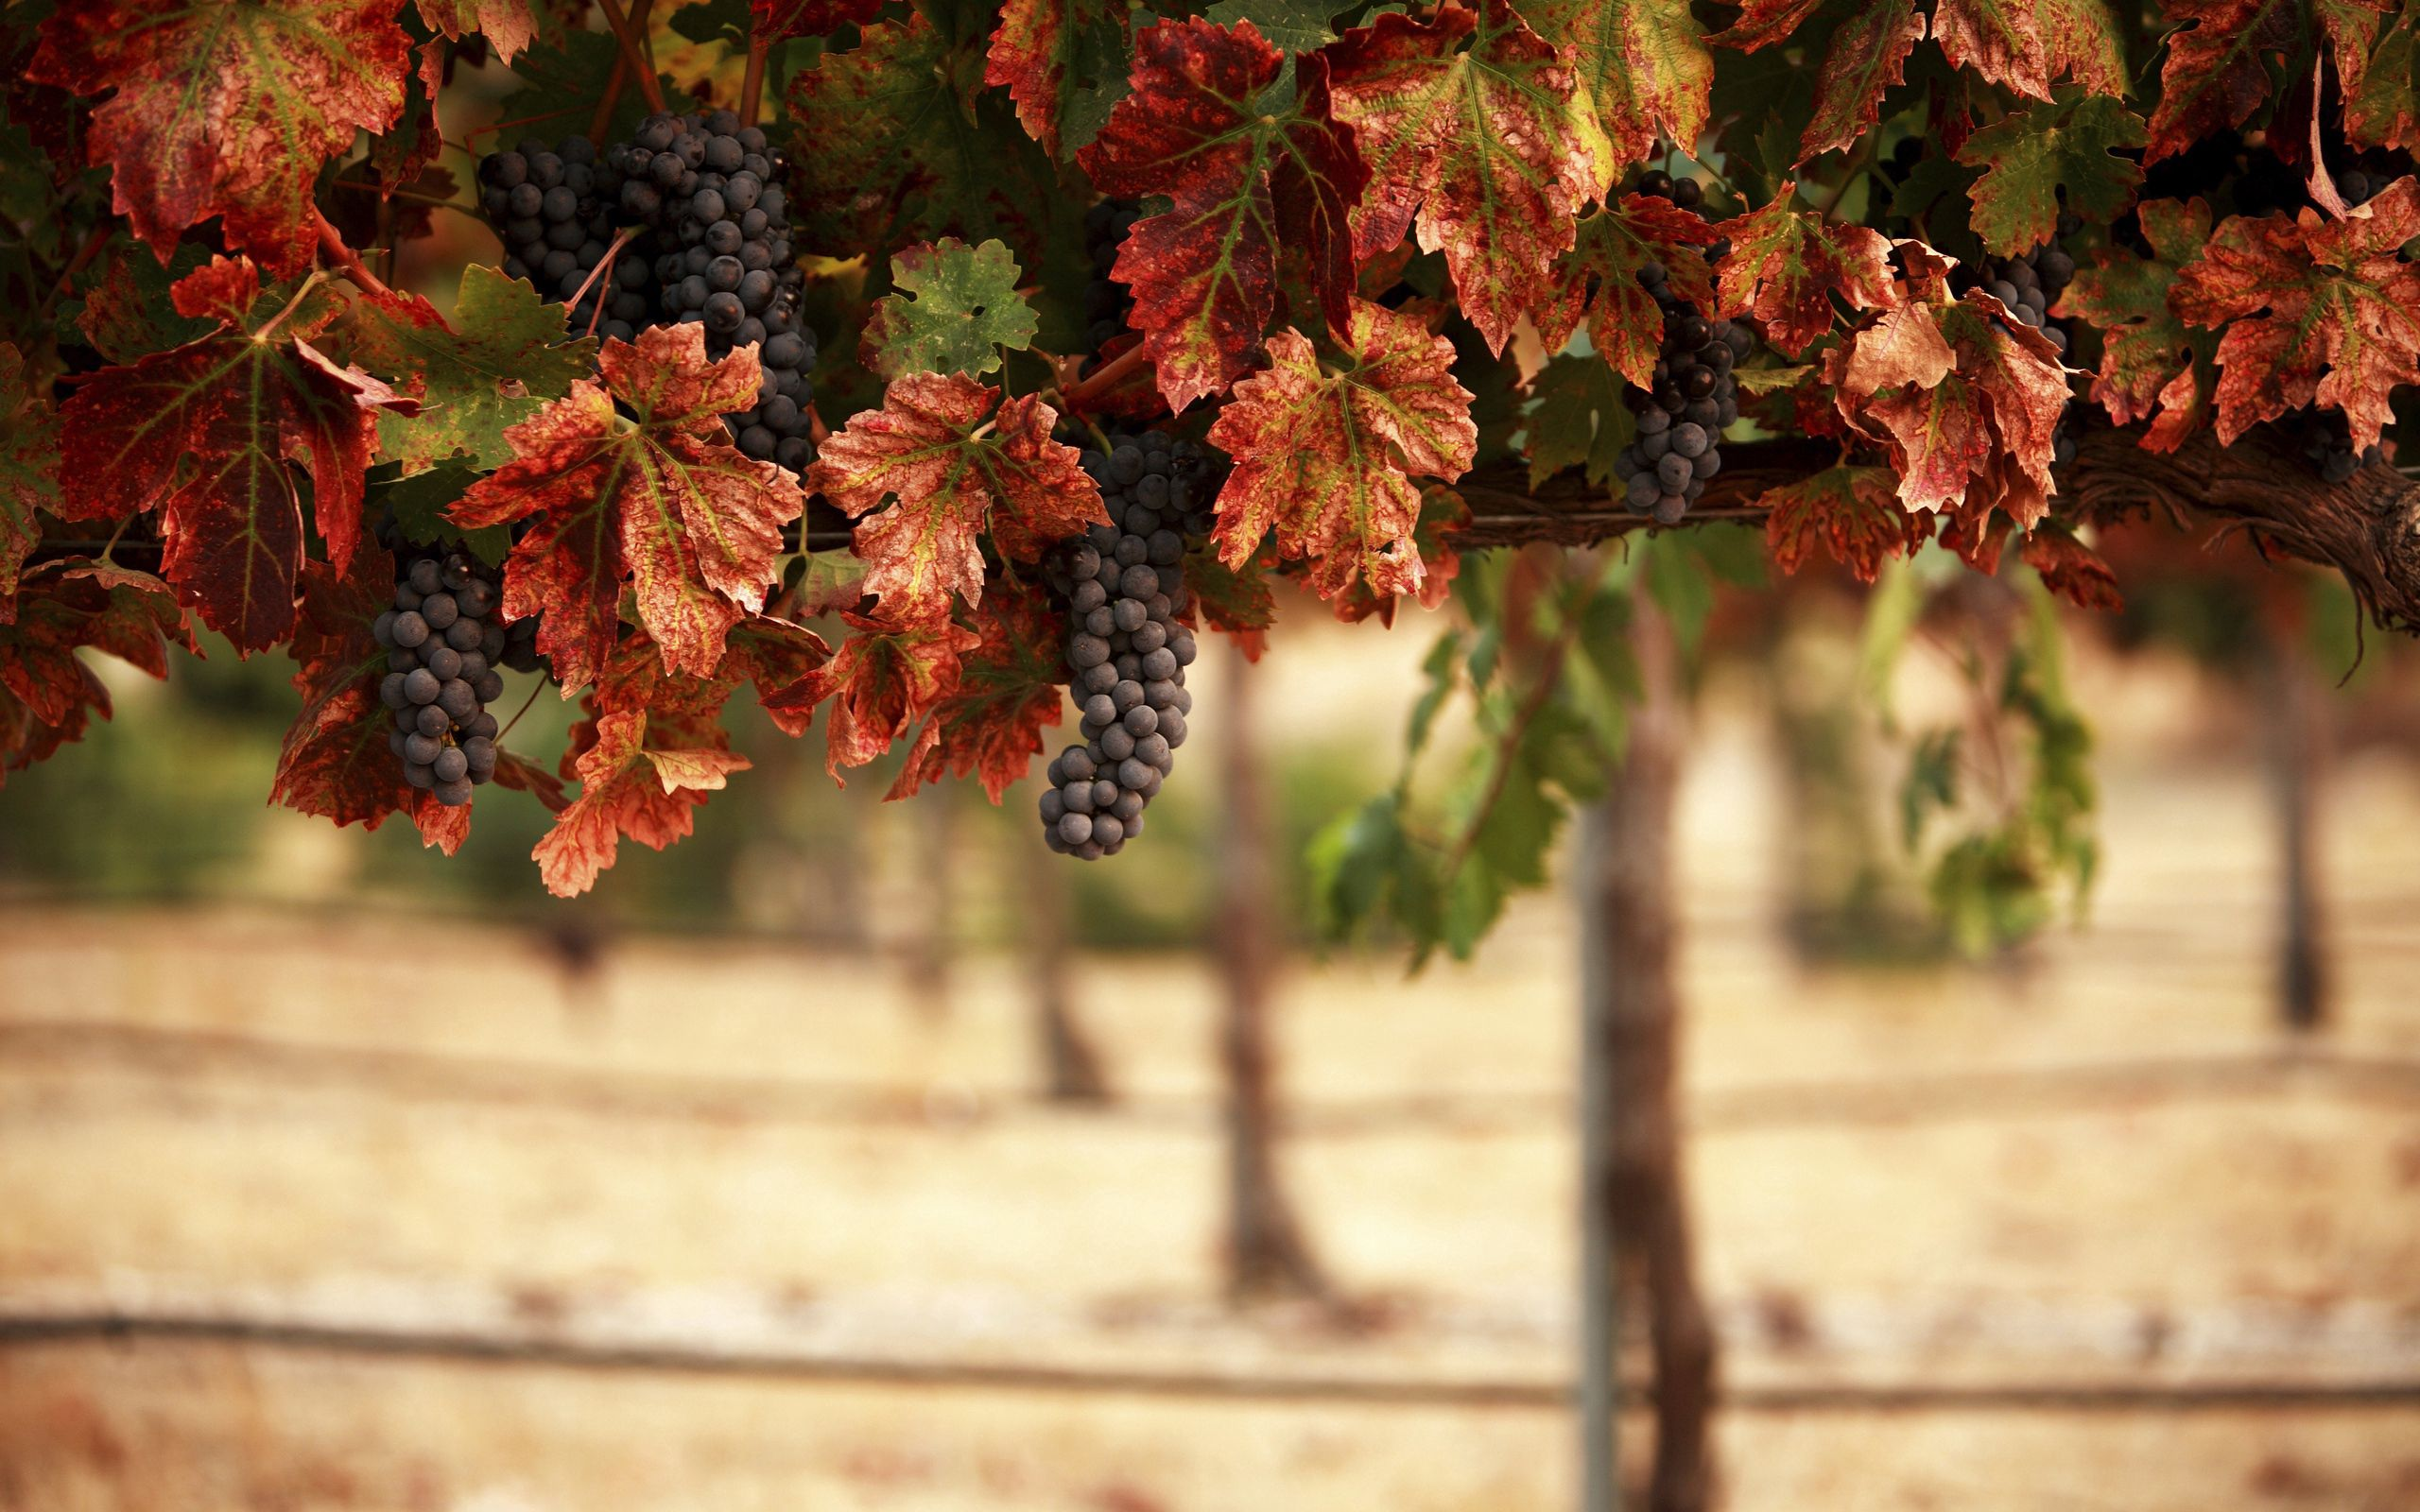 114931 Screensavers and Wallpapers Landscape for phone. Download Food, Nature, Leaves, Blur, Vineyard, Bunches, Grapes, Landscape pictures for free